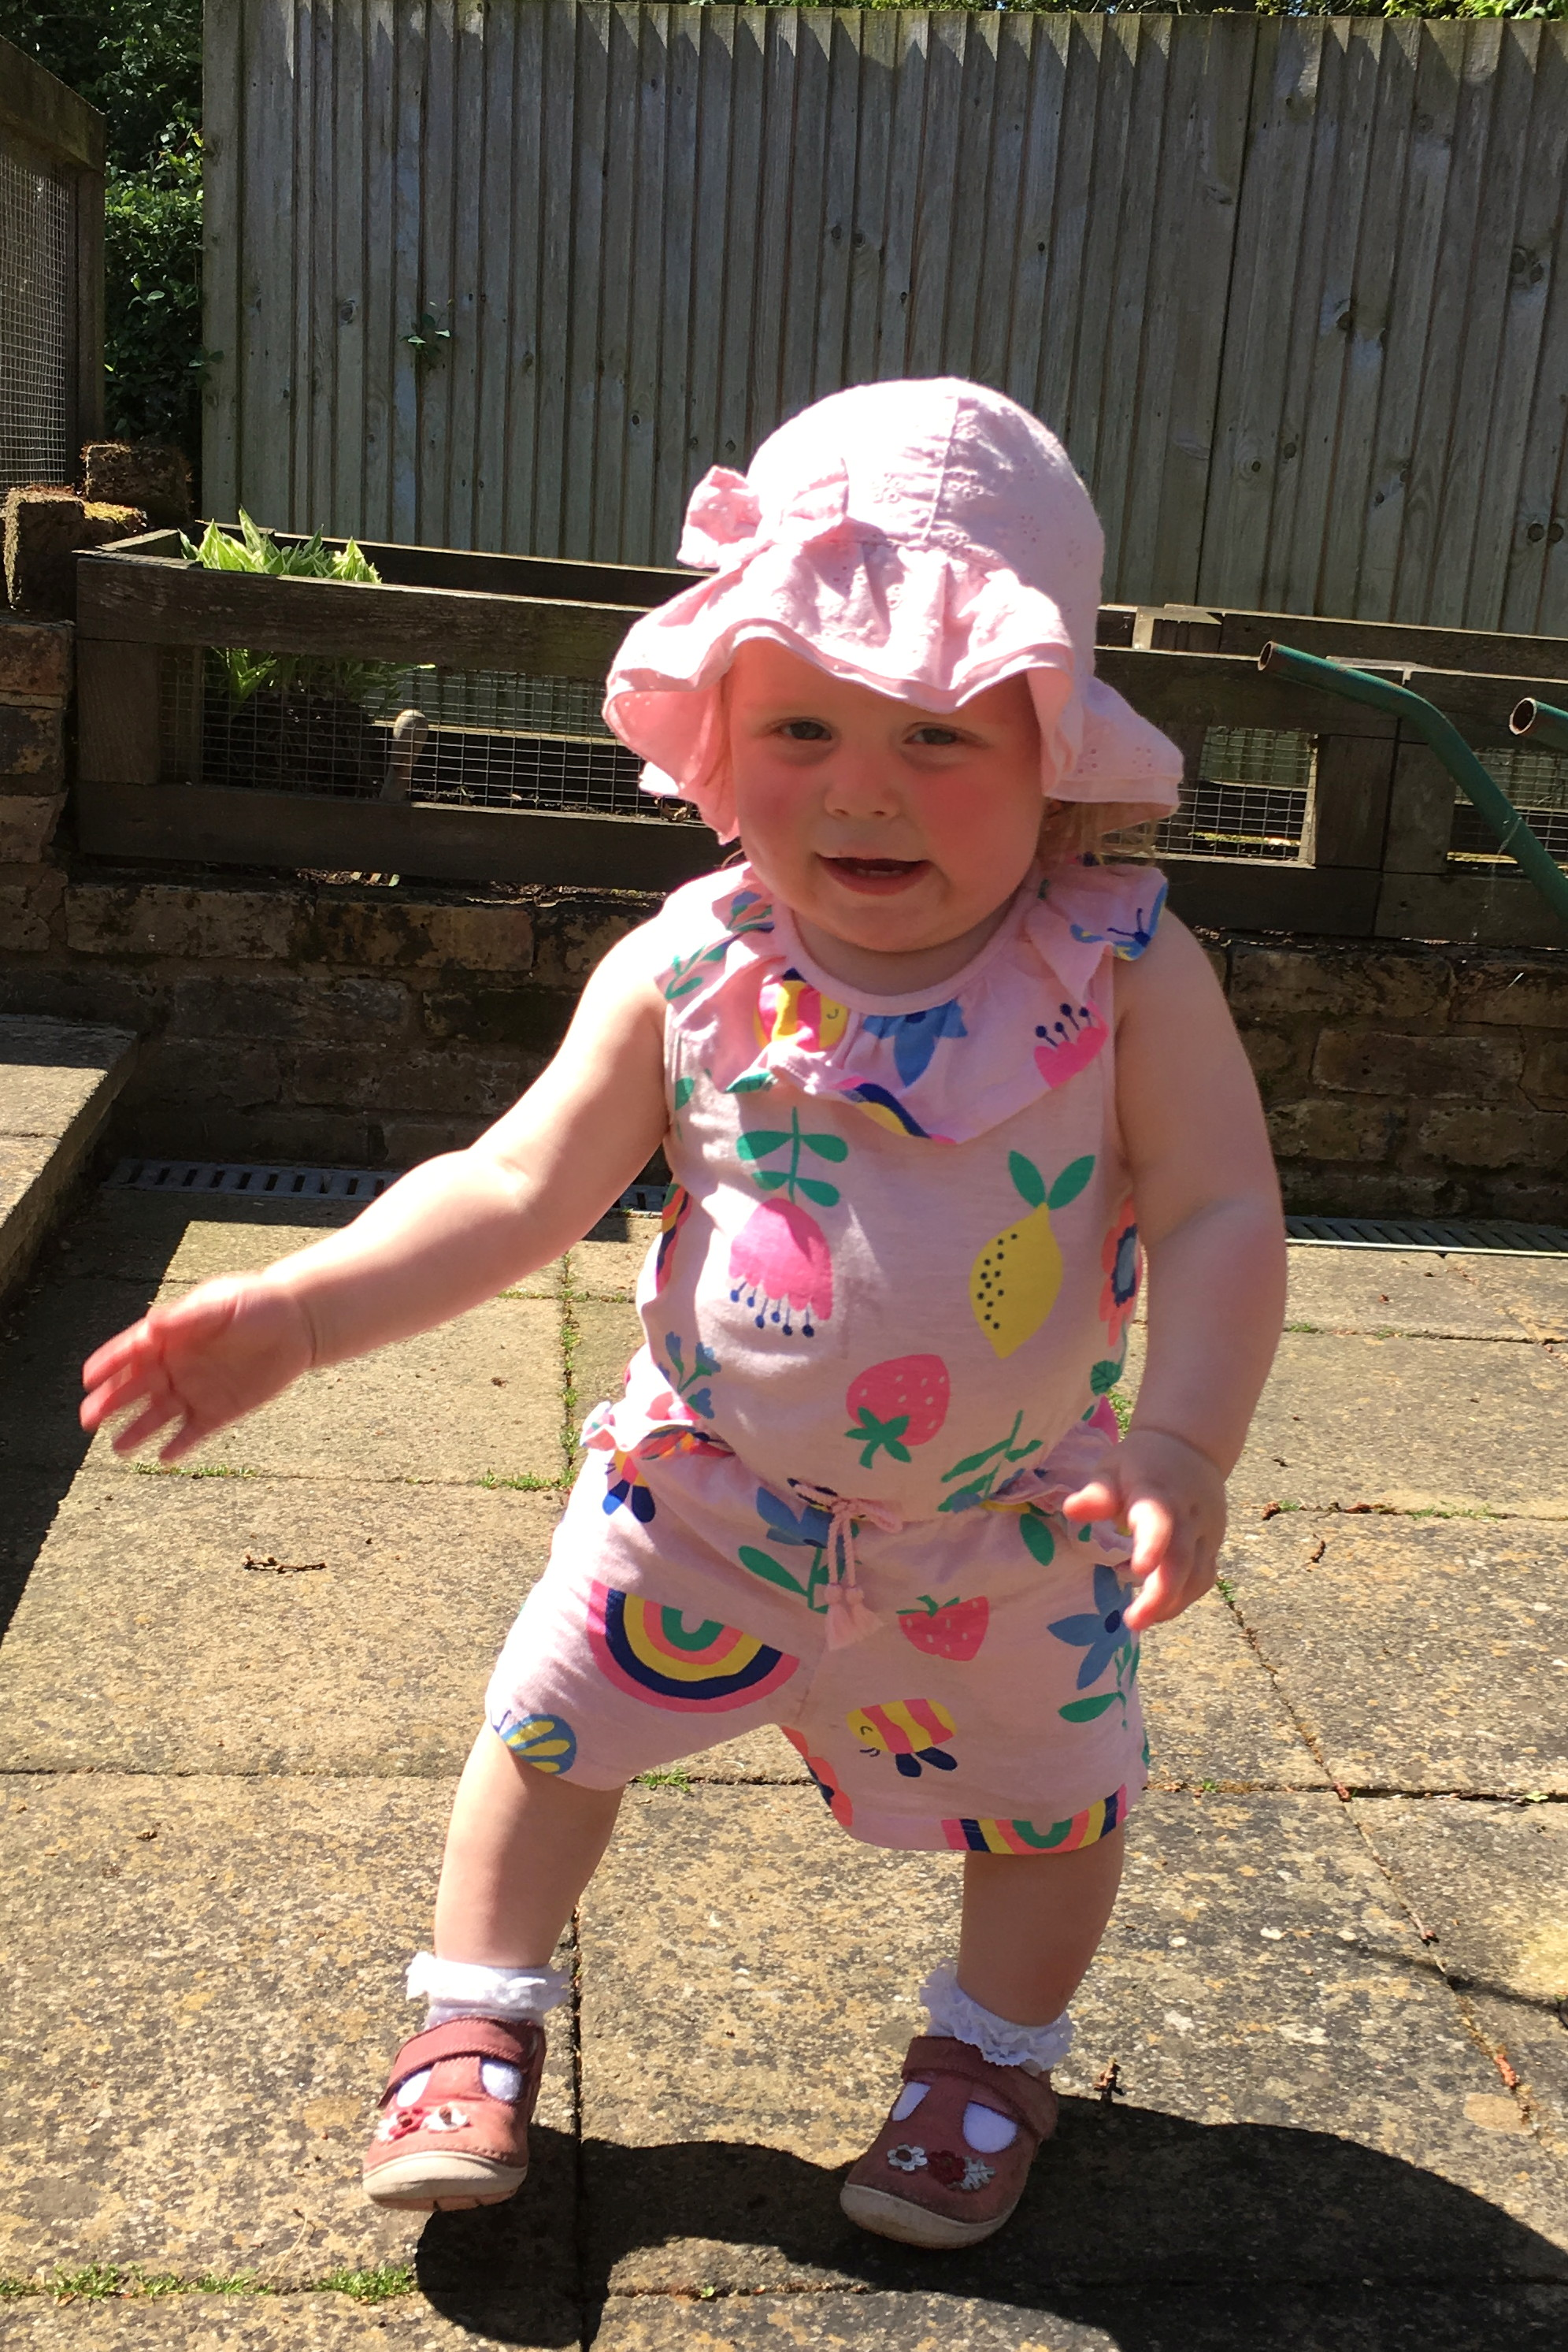 14 months old girl, dancing in the garden in sunshine